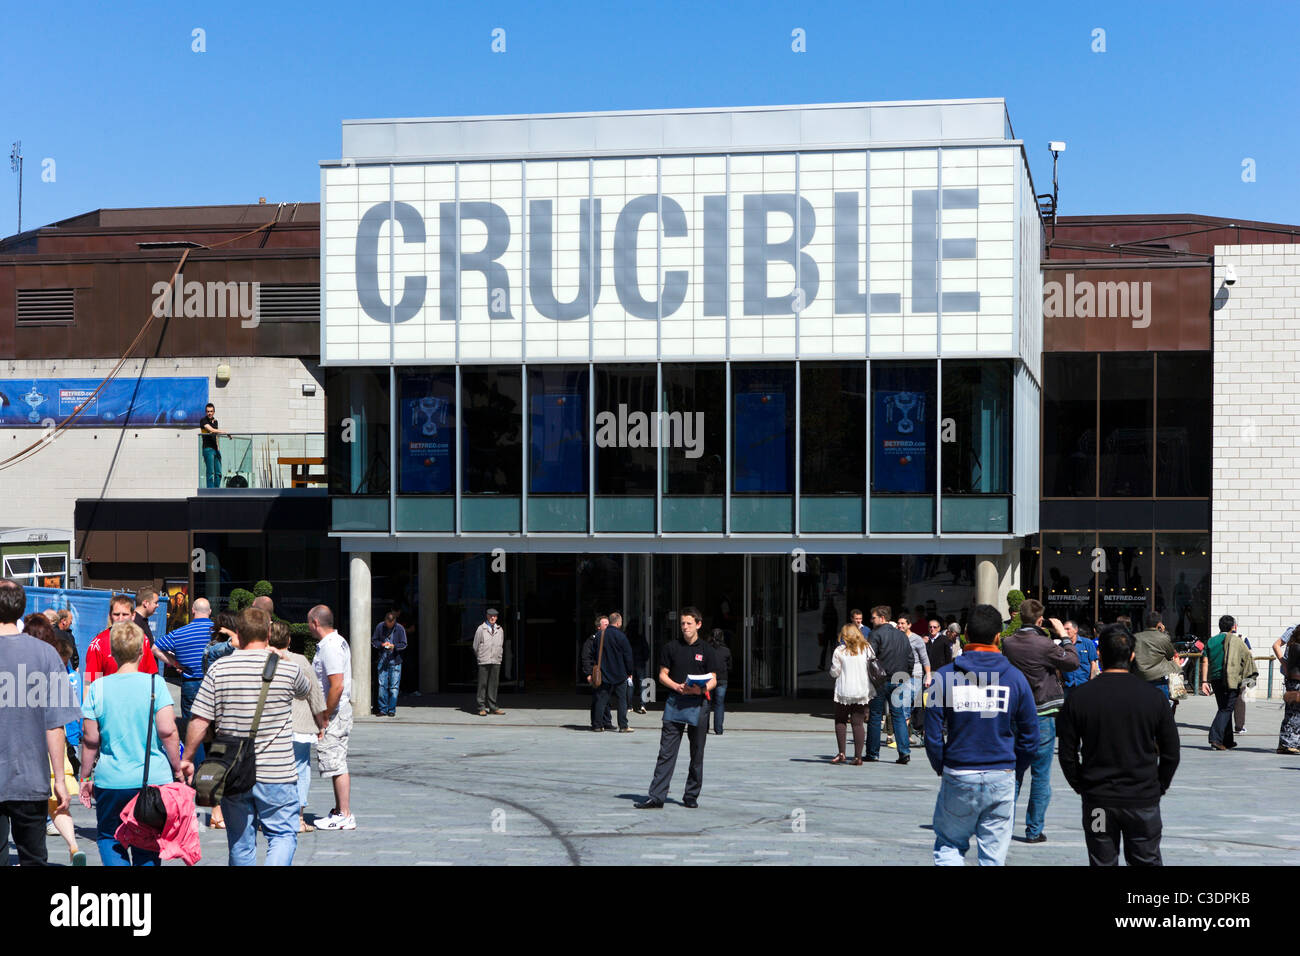 The Crucible Stock Photos & The Crucible Stock Images - Alamy